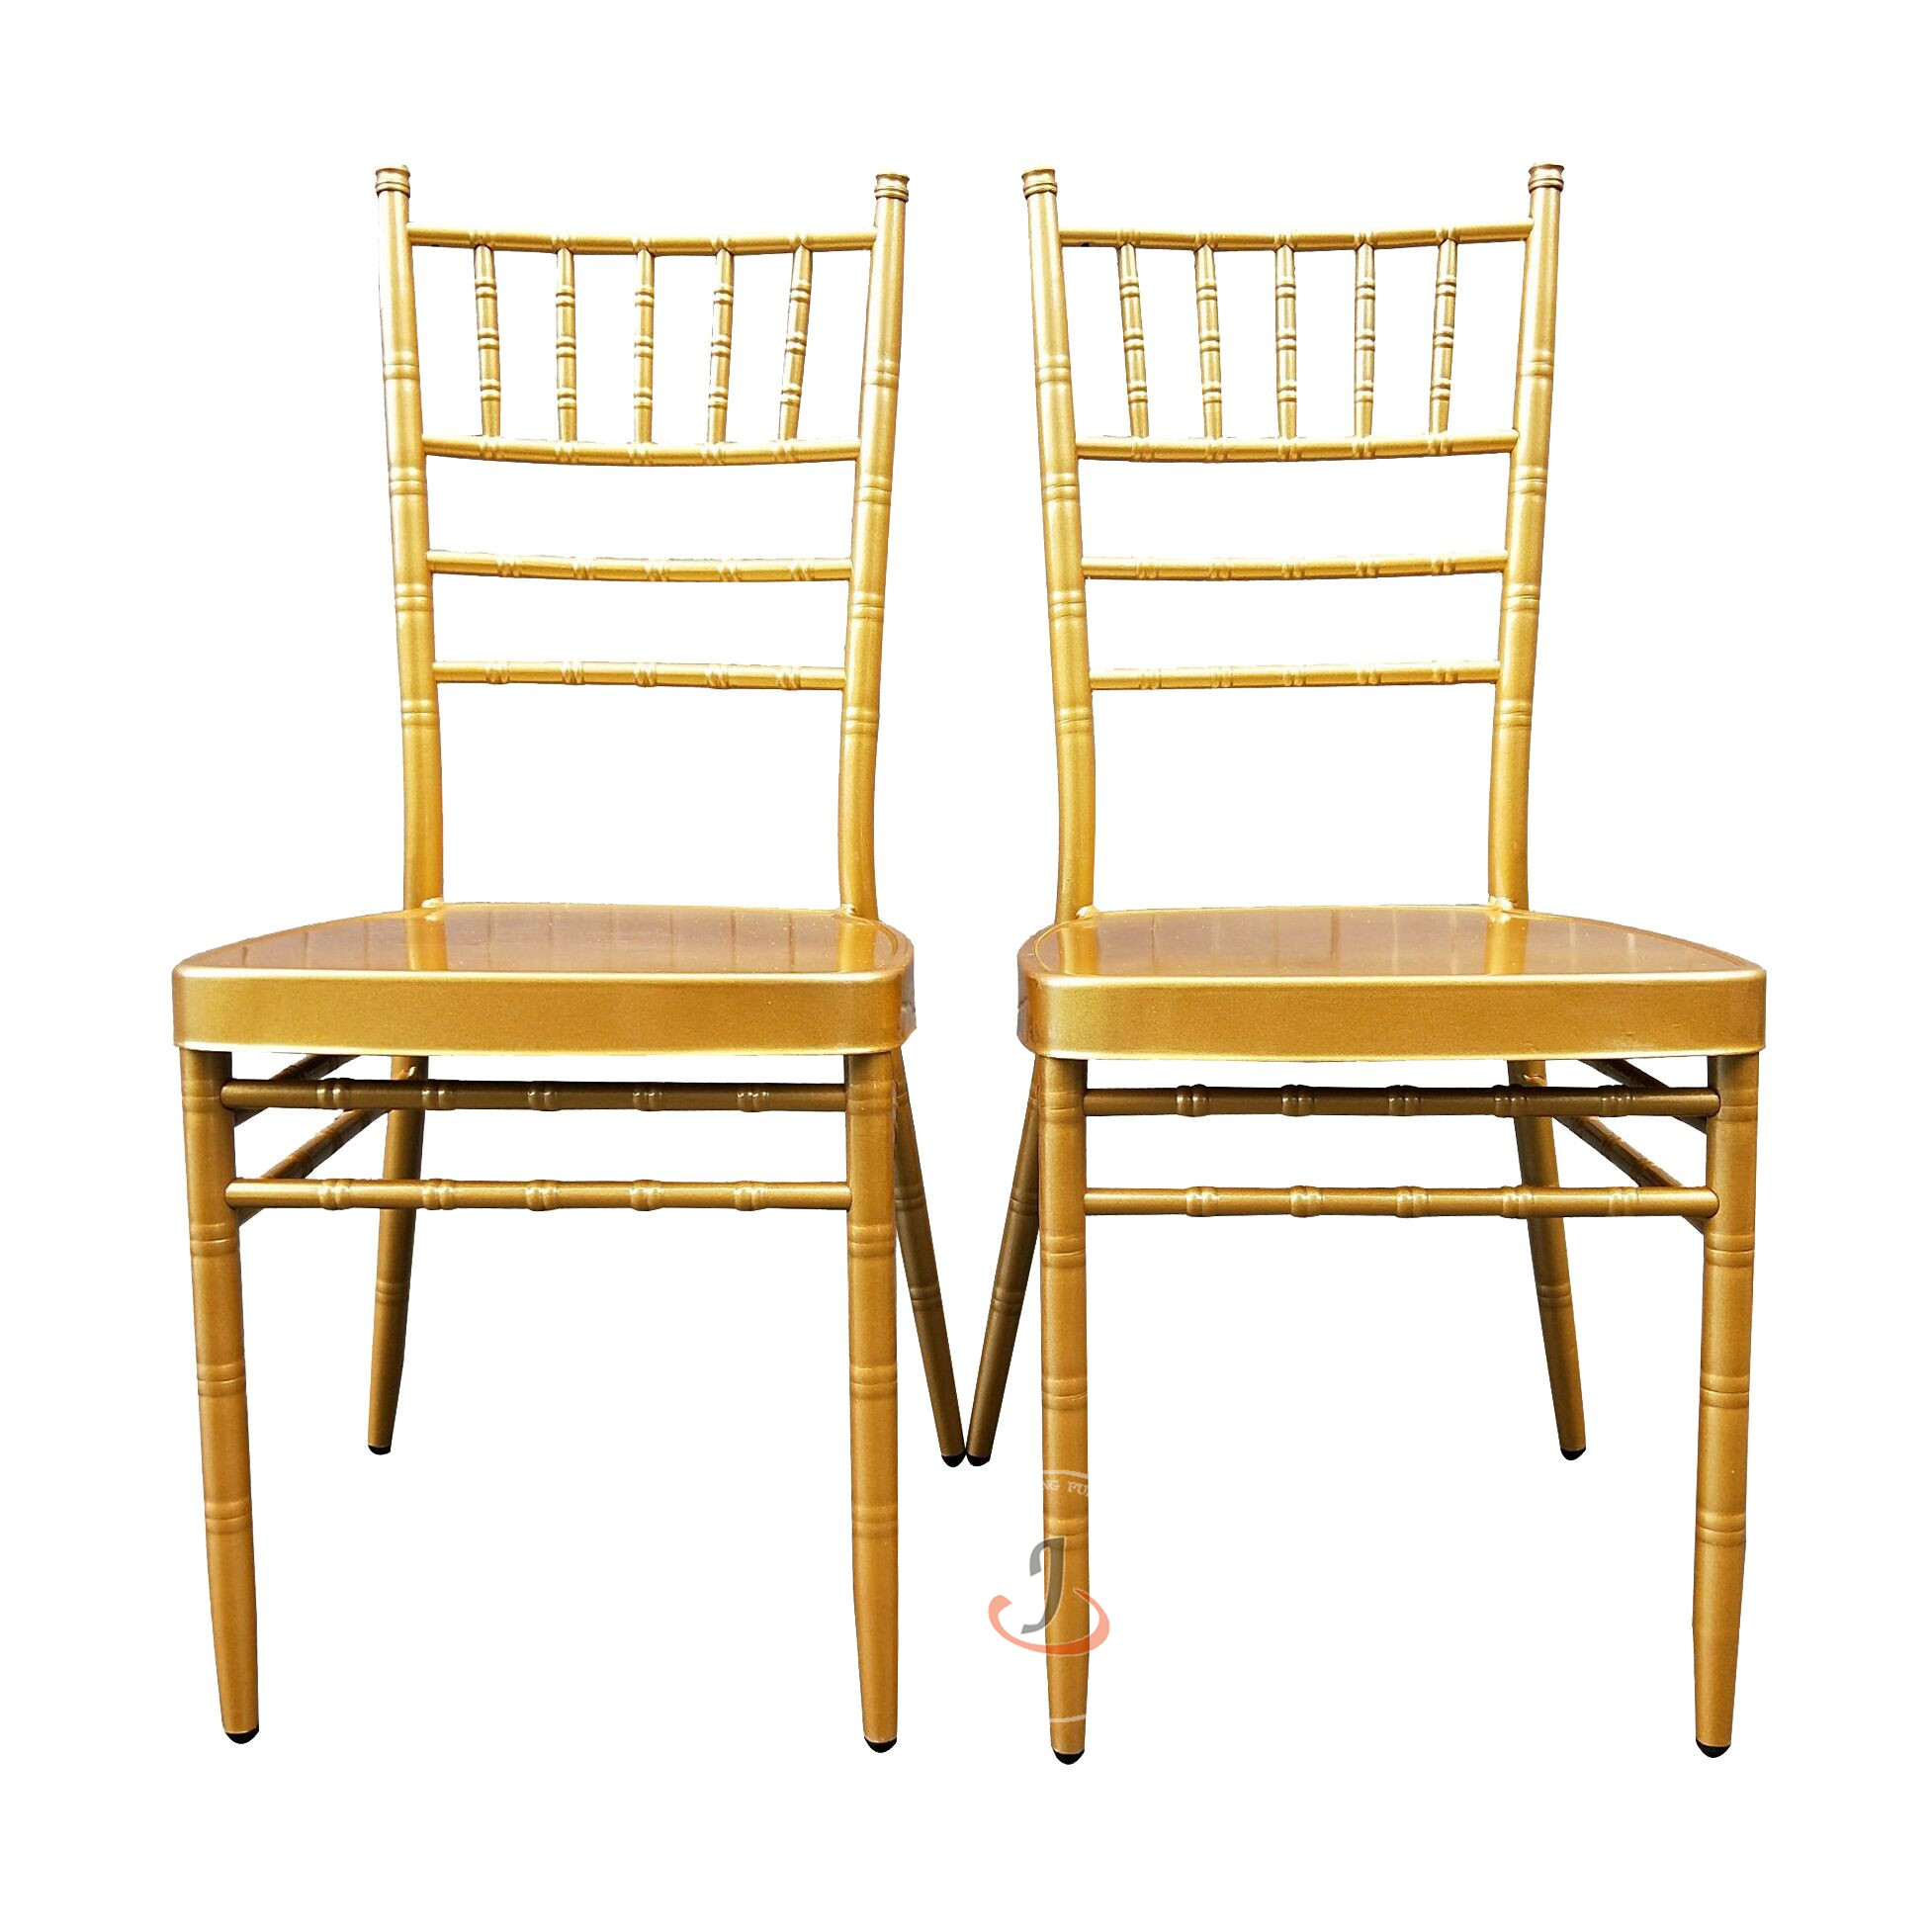 Chiavari Chair Rental SF-ZJ01 Featured Image